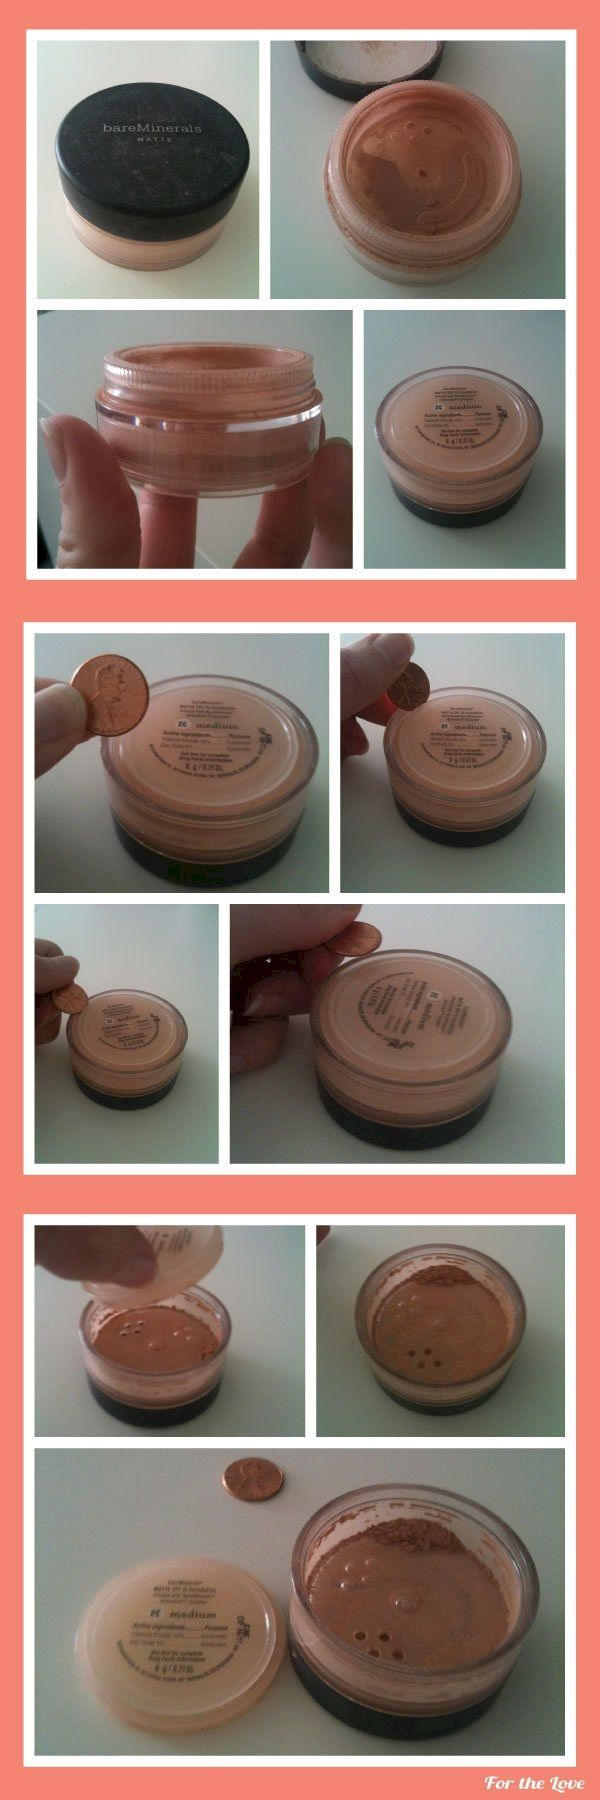 15. There's still some mineral concealer hidden at the bottom. Grab a penny and pry open the bottom to reach the rest!